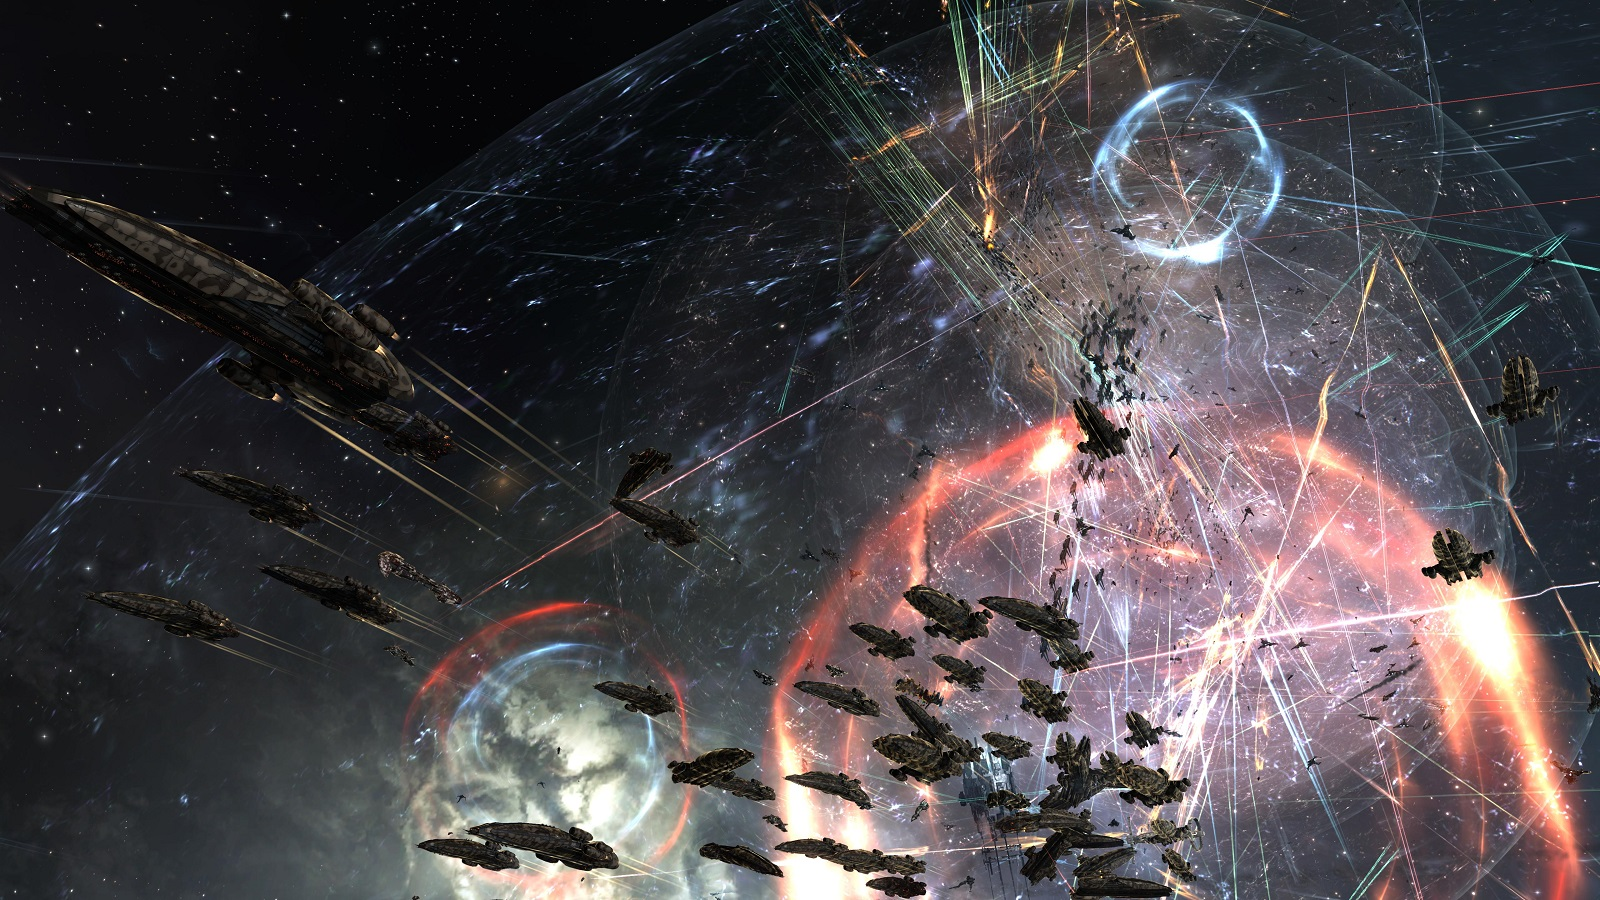 We Might Be Seeing The Largest EVE Online Battle With $1,000,000 Worth Of Spaceships On The Line